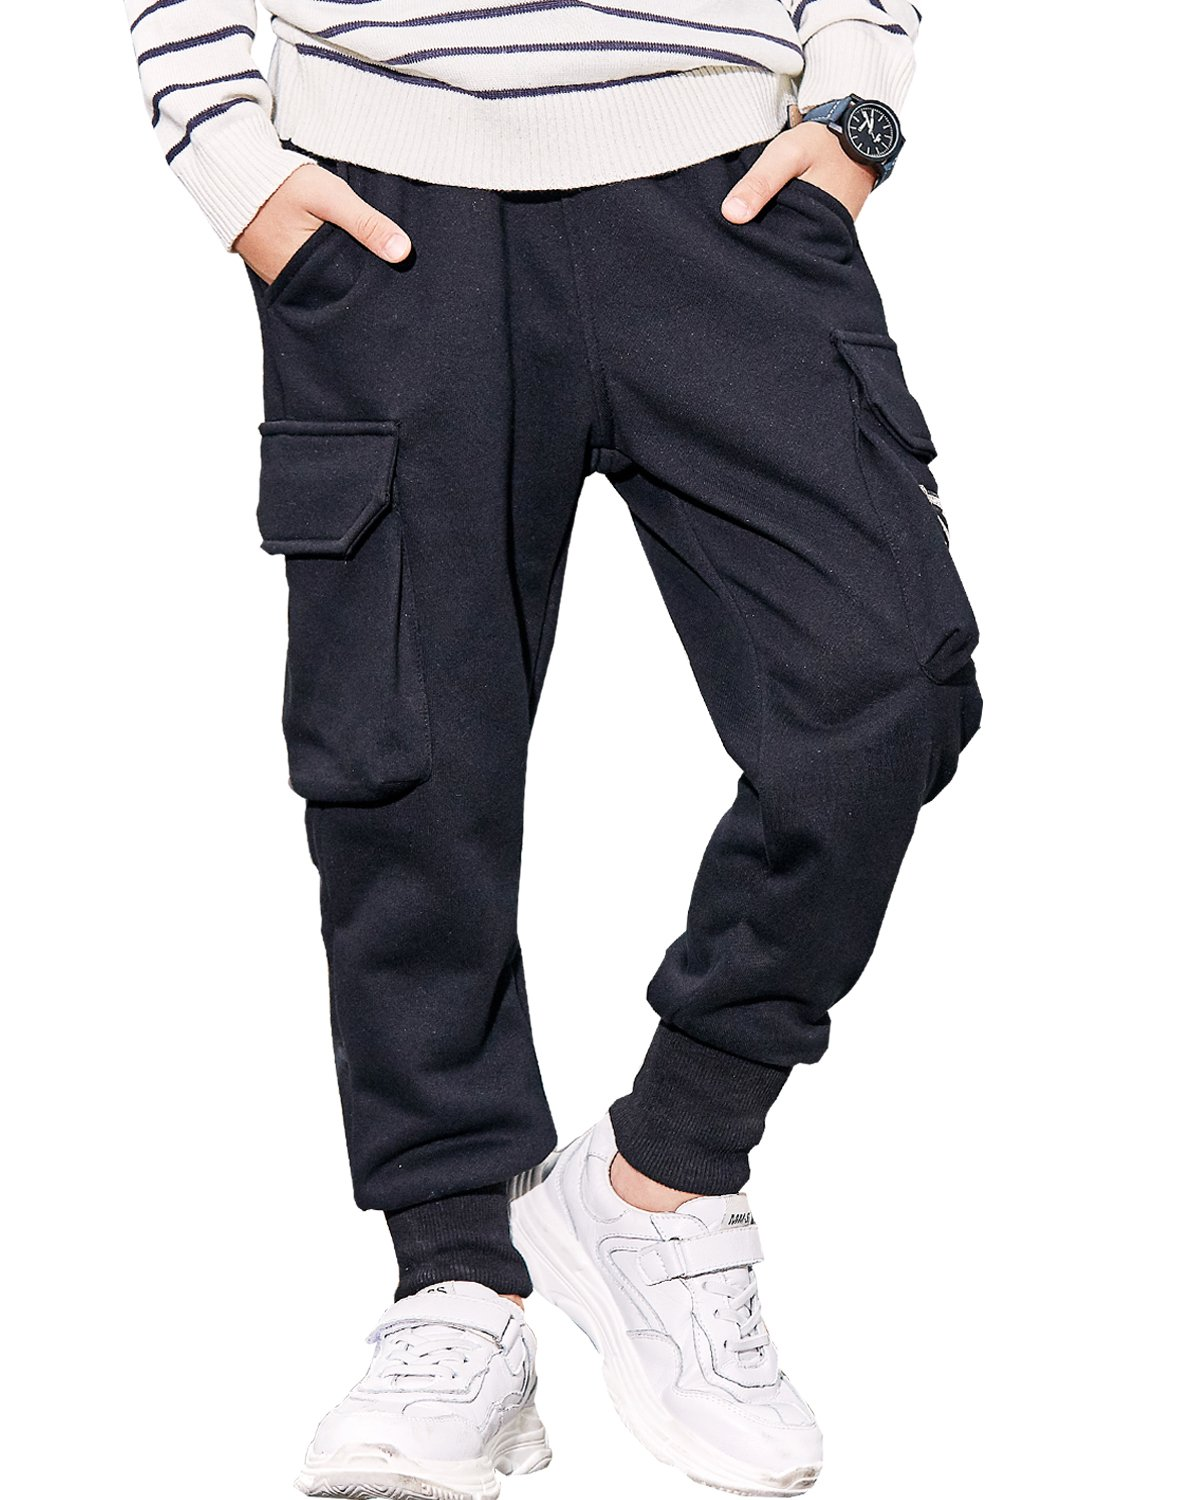 BYCR Boys' Elastic Adjustable Waist Two Pockets Cotton Jogger Pants for Kids